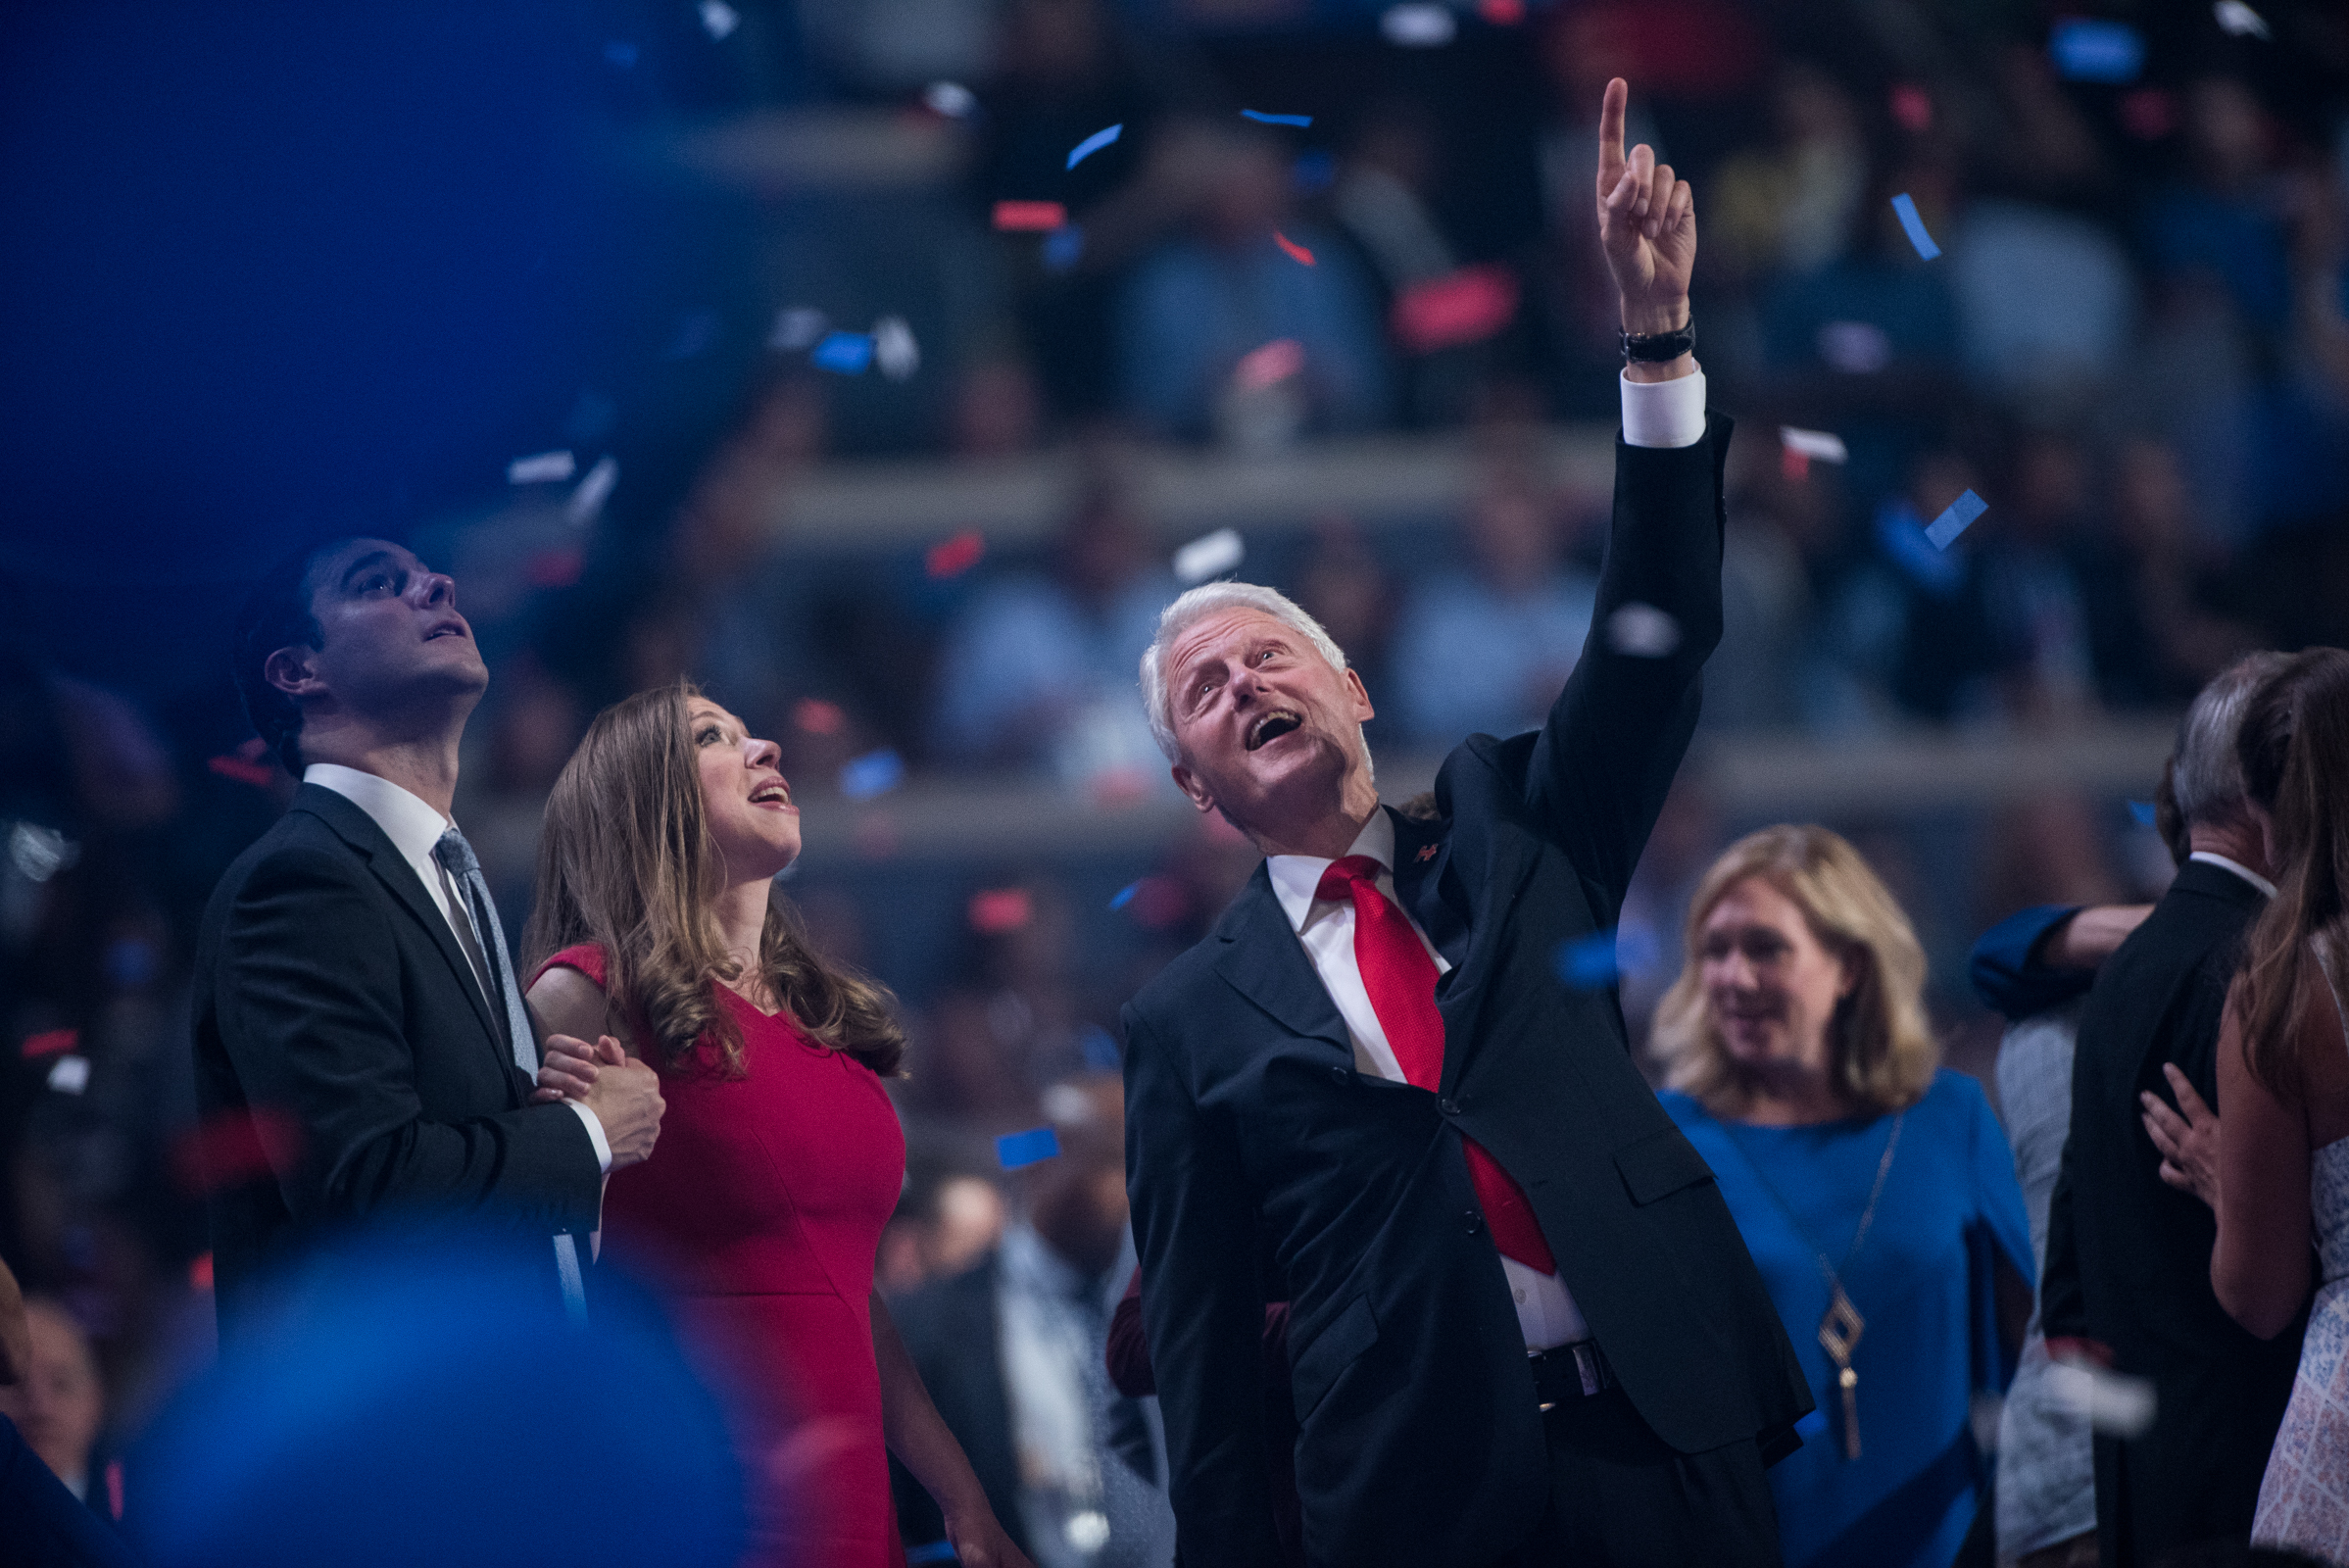 Former president Bill Clinton points to balloons released at the end of the Democratic National Convention inside the Wells Fargo Center in Philadelphia on Thursday July 28, 2016. (Michael Ares /Philadelphia Inquirer)